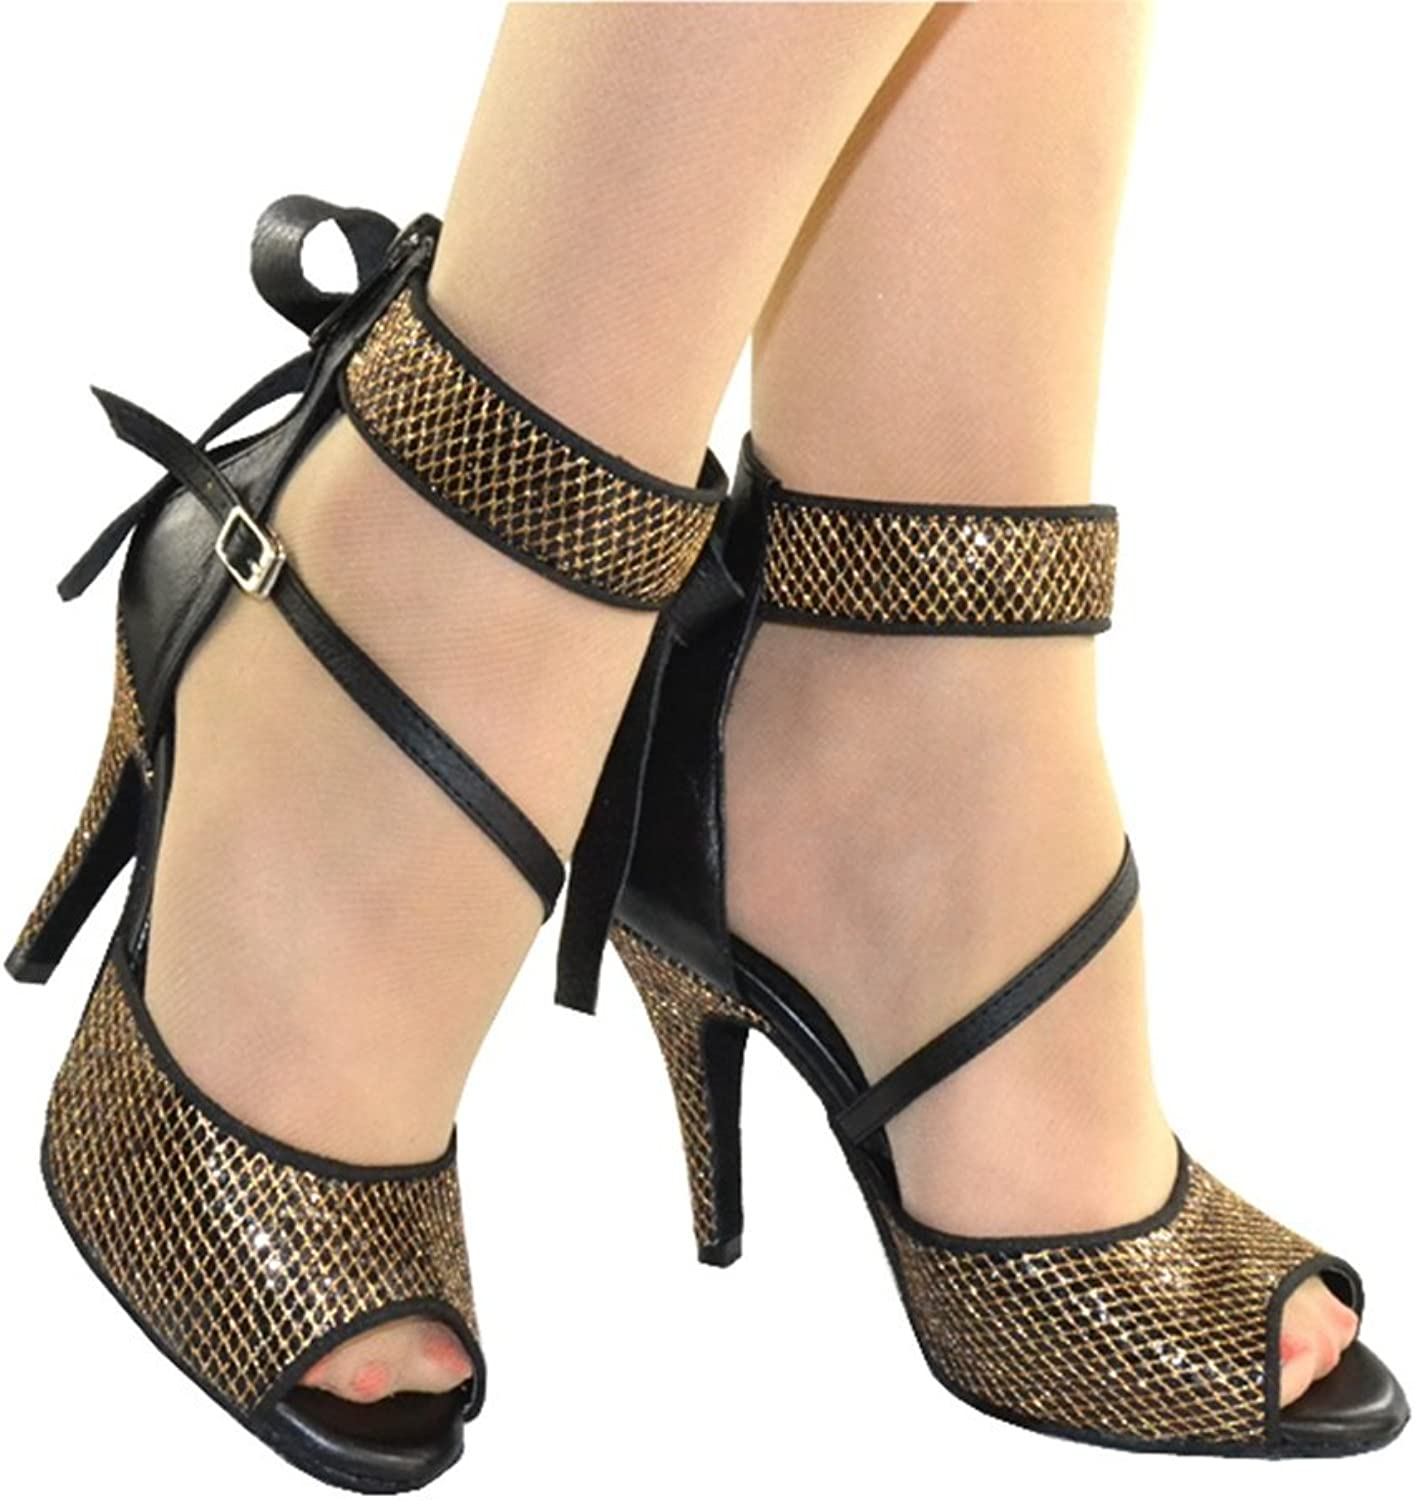 TDA Women's Stiletto High Heel Zippers Open Toe Buckle Bowknot Ankle Strap Special Occasion Latin Jazz Rumba Samba Sandals